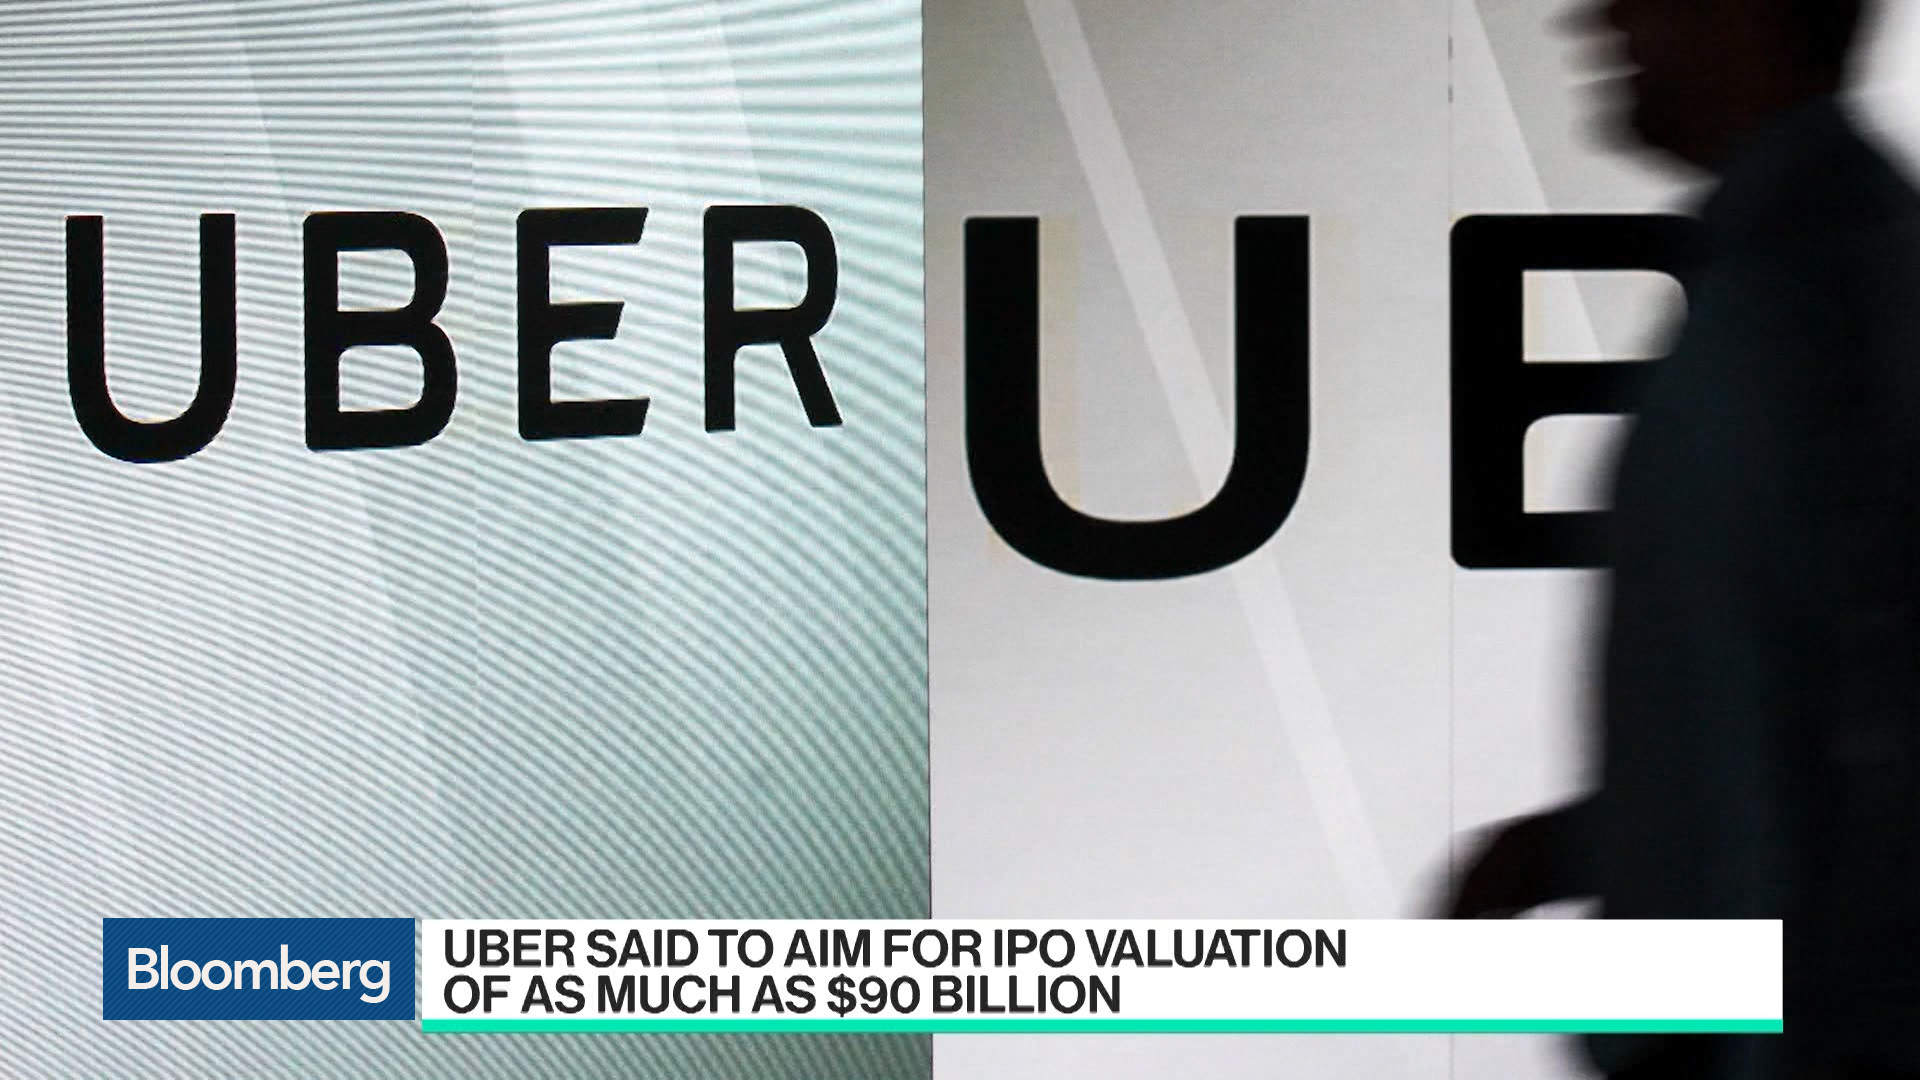 Uber Is Planning IPO Price Range of About $44 to $50 a Share